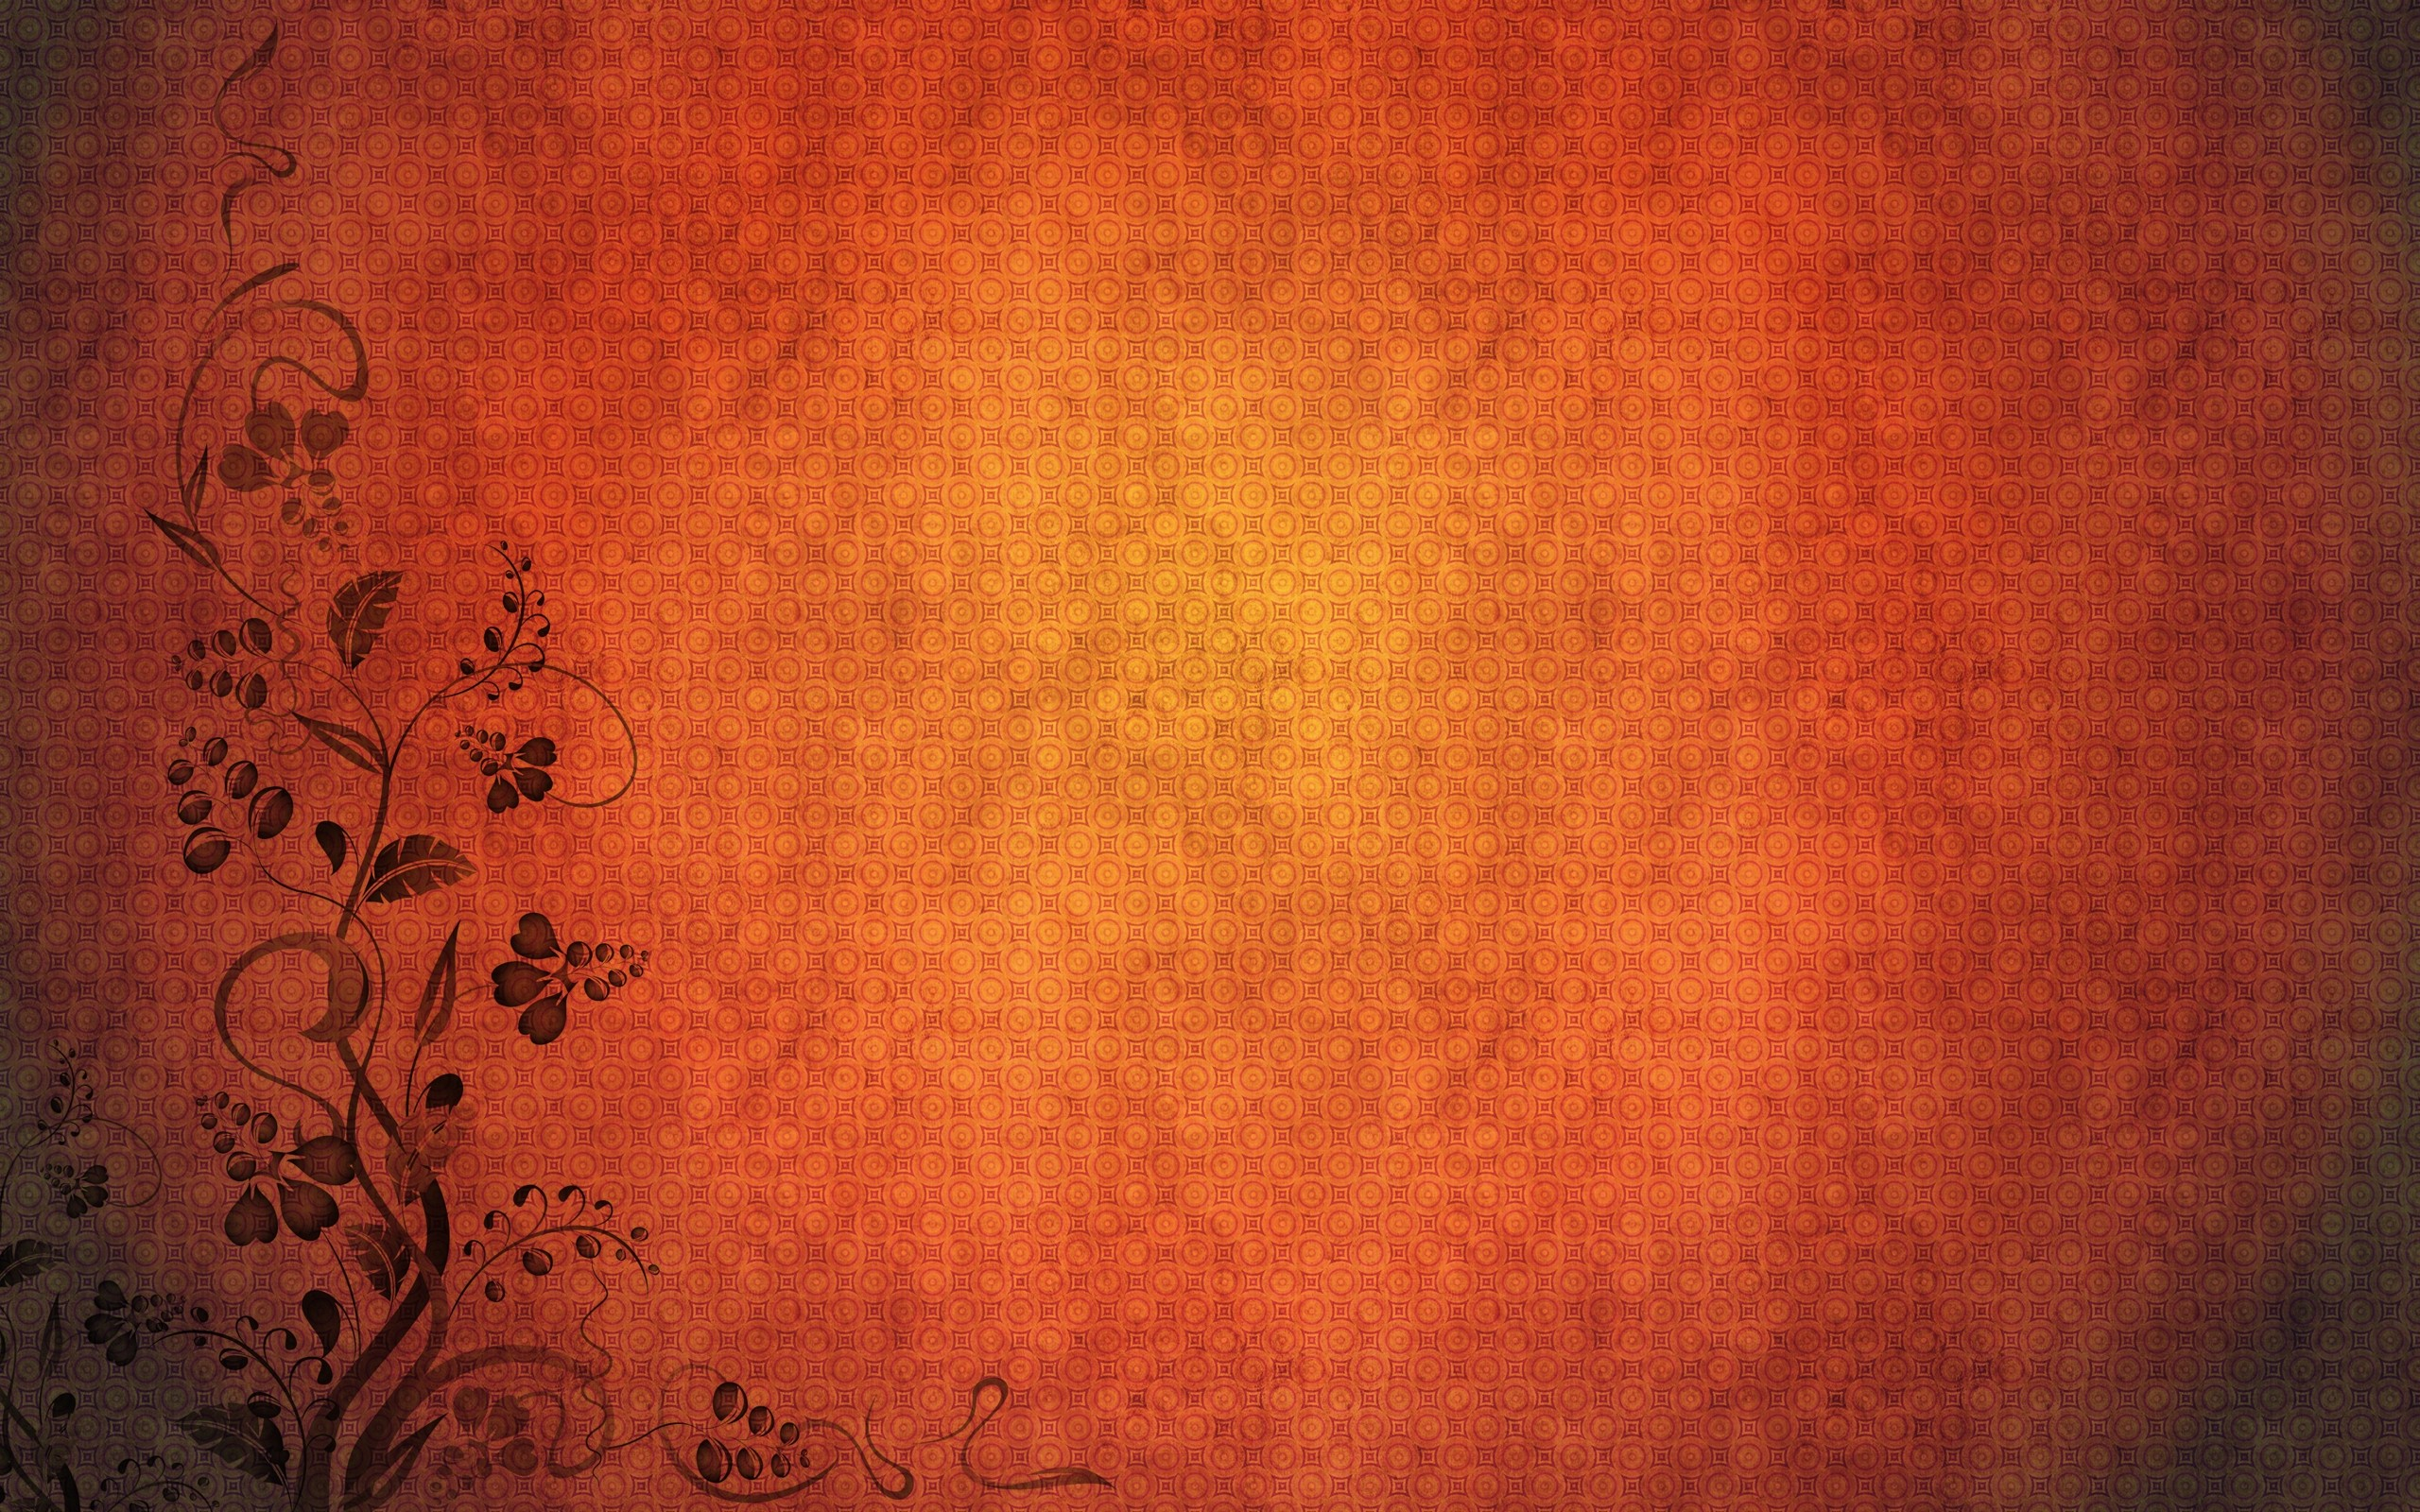 Minimalistic orange patterns textures simple background wallpaper 2560x1600